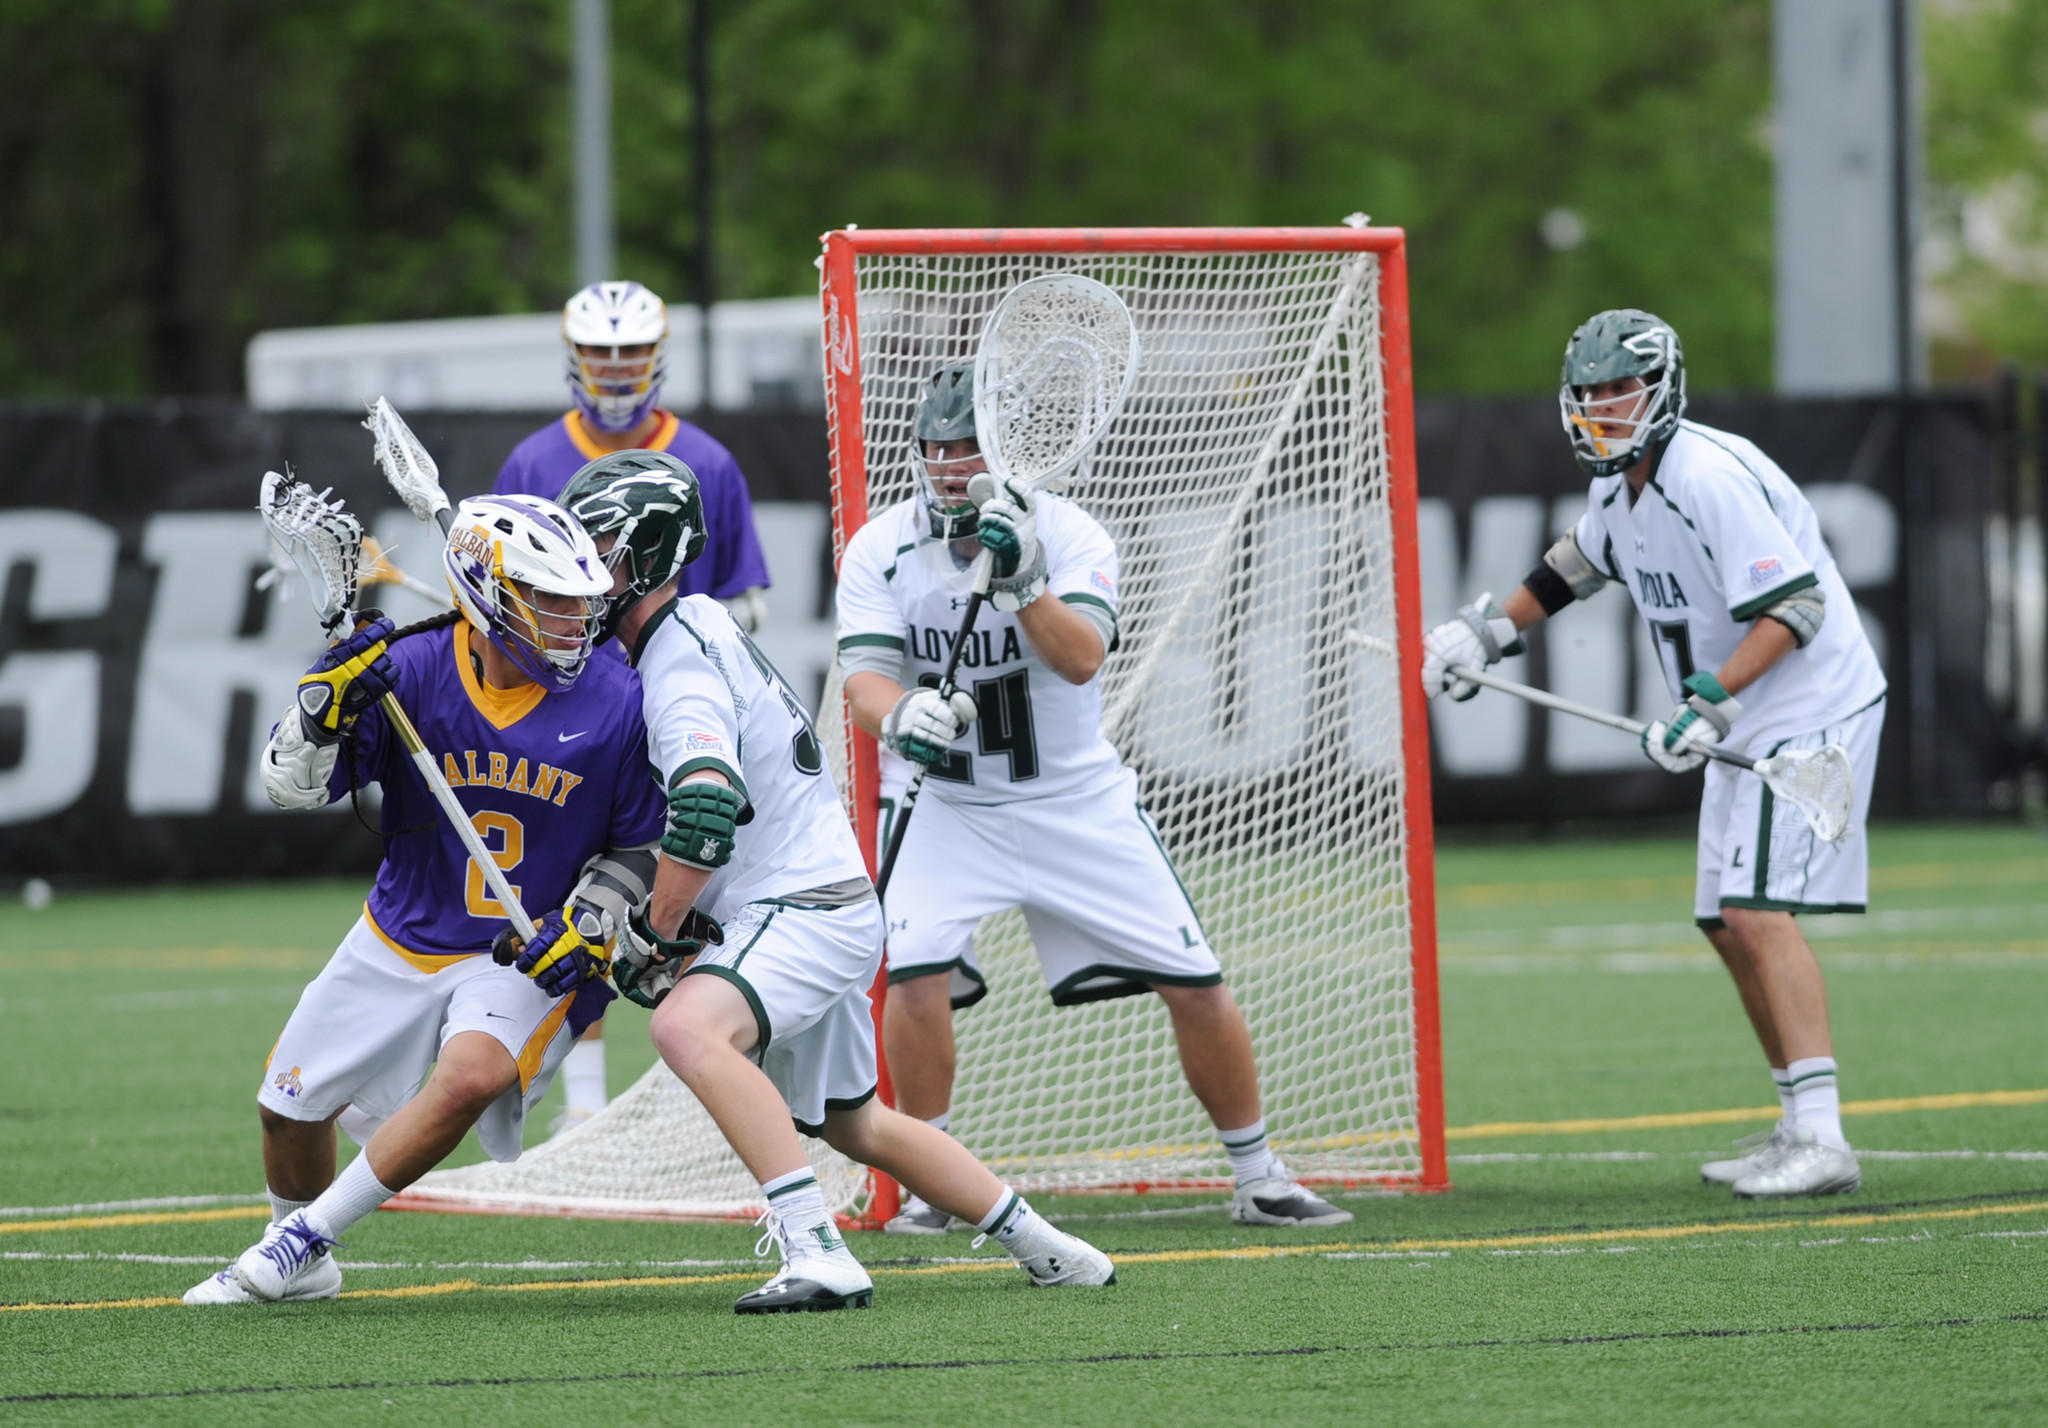 Albany's Miles Thompson (2) is checked by Loyola's Pat Frazier.